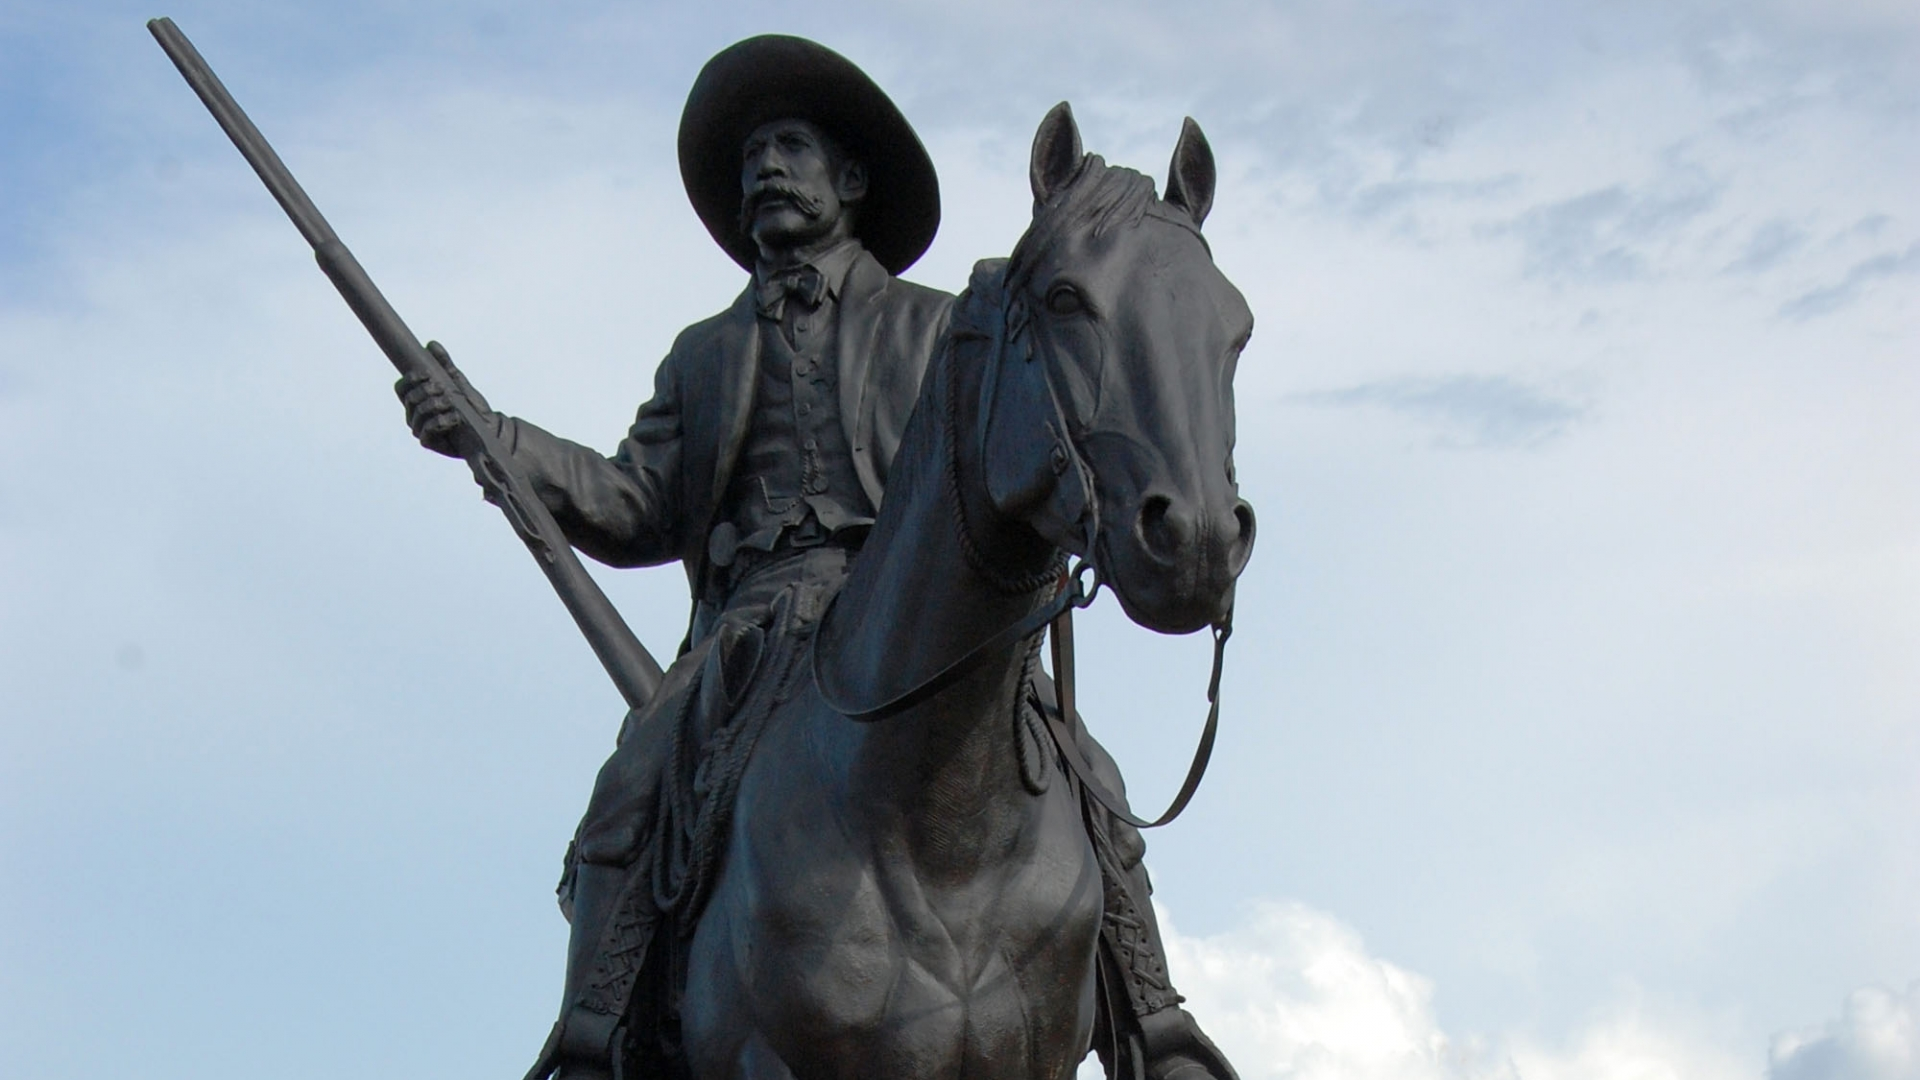 A statue of U.S. Deputy Marshal Bass Reeves in Fort Smith, Arkansas. (Credit: Jeannie Nuss/AP Photo)